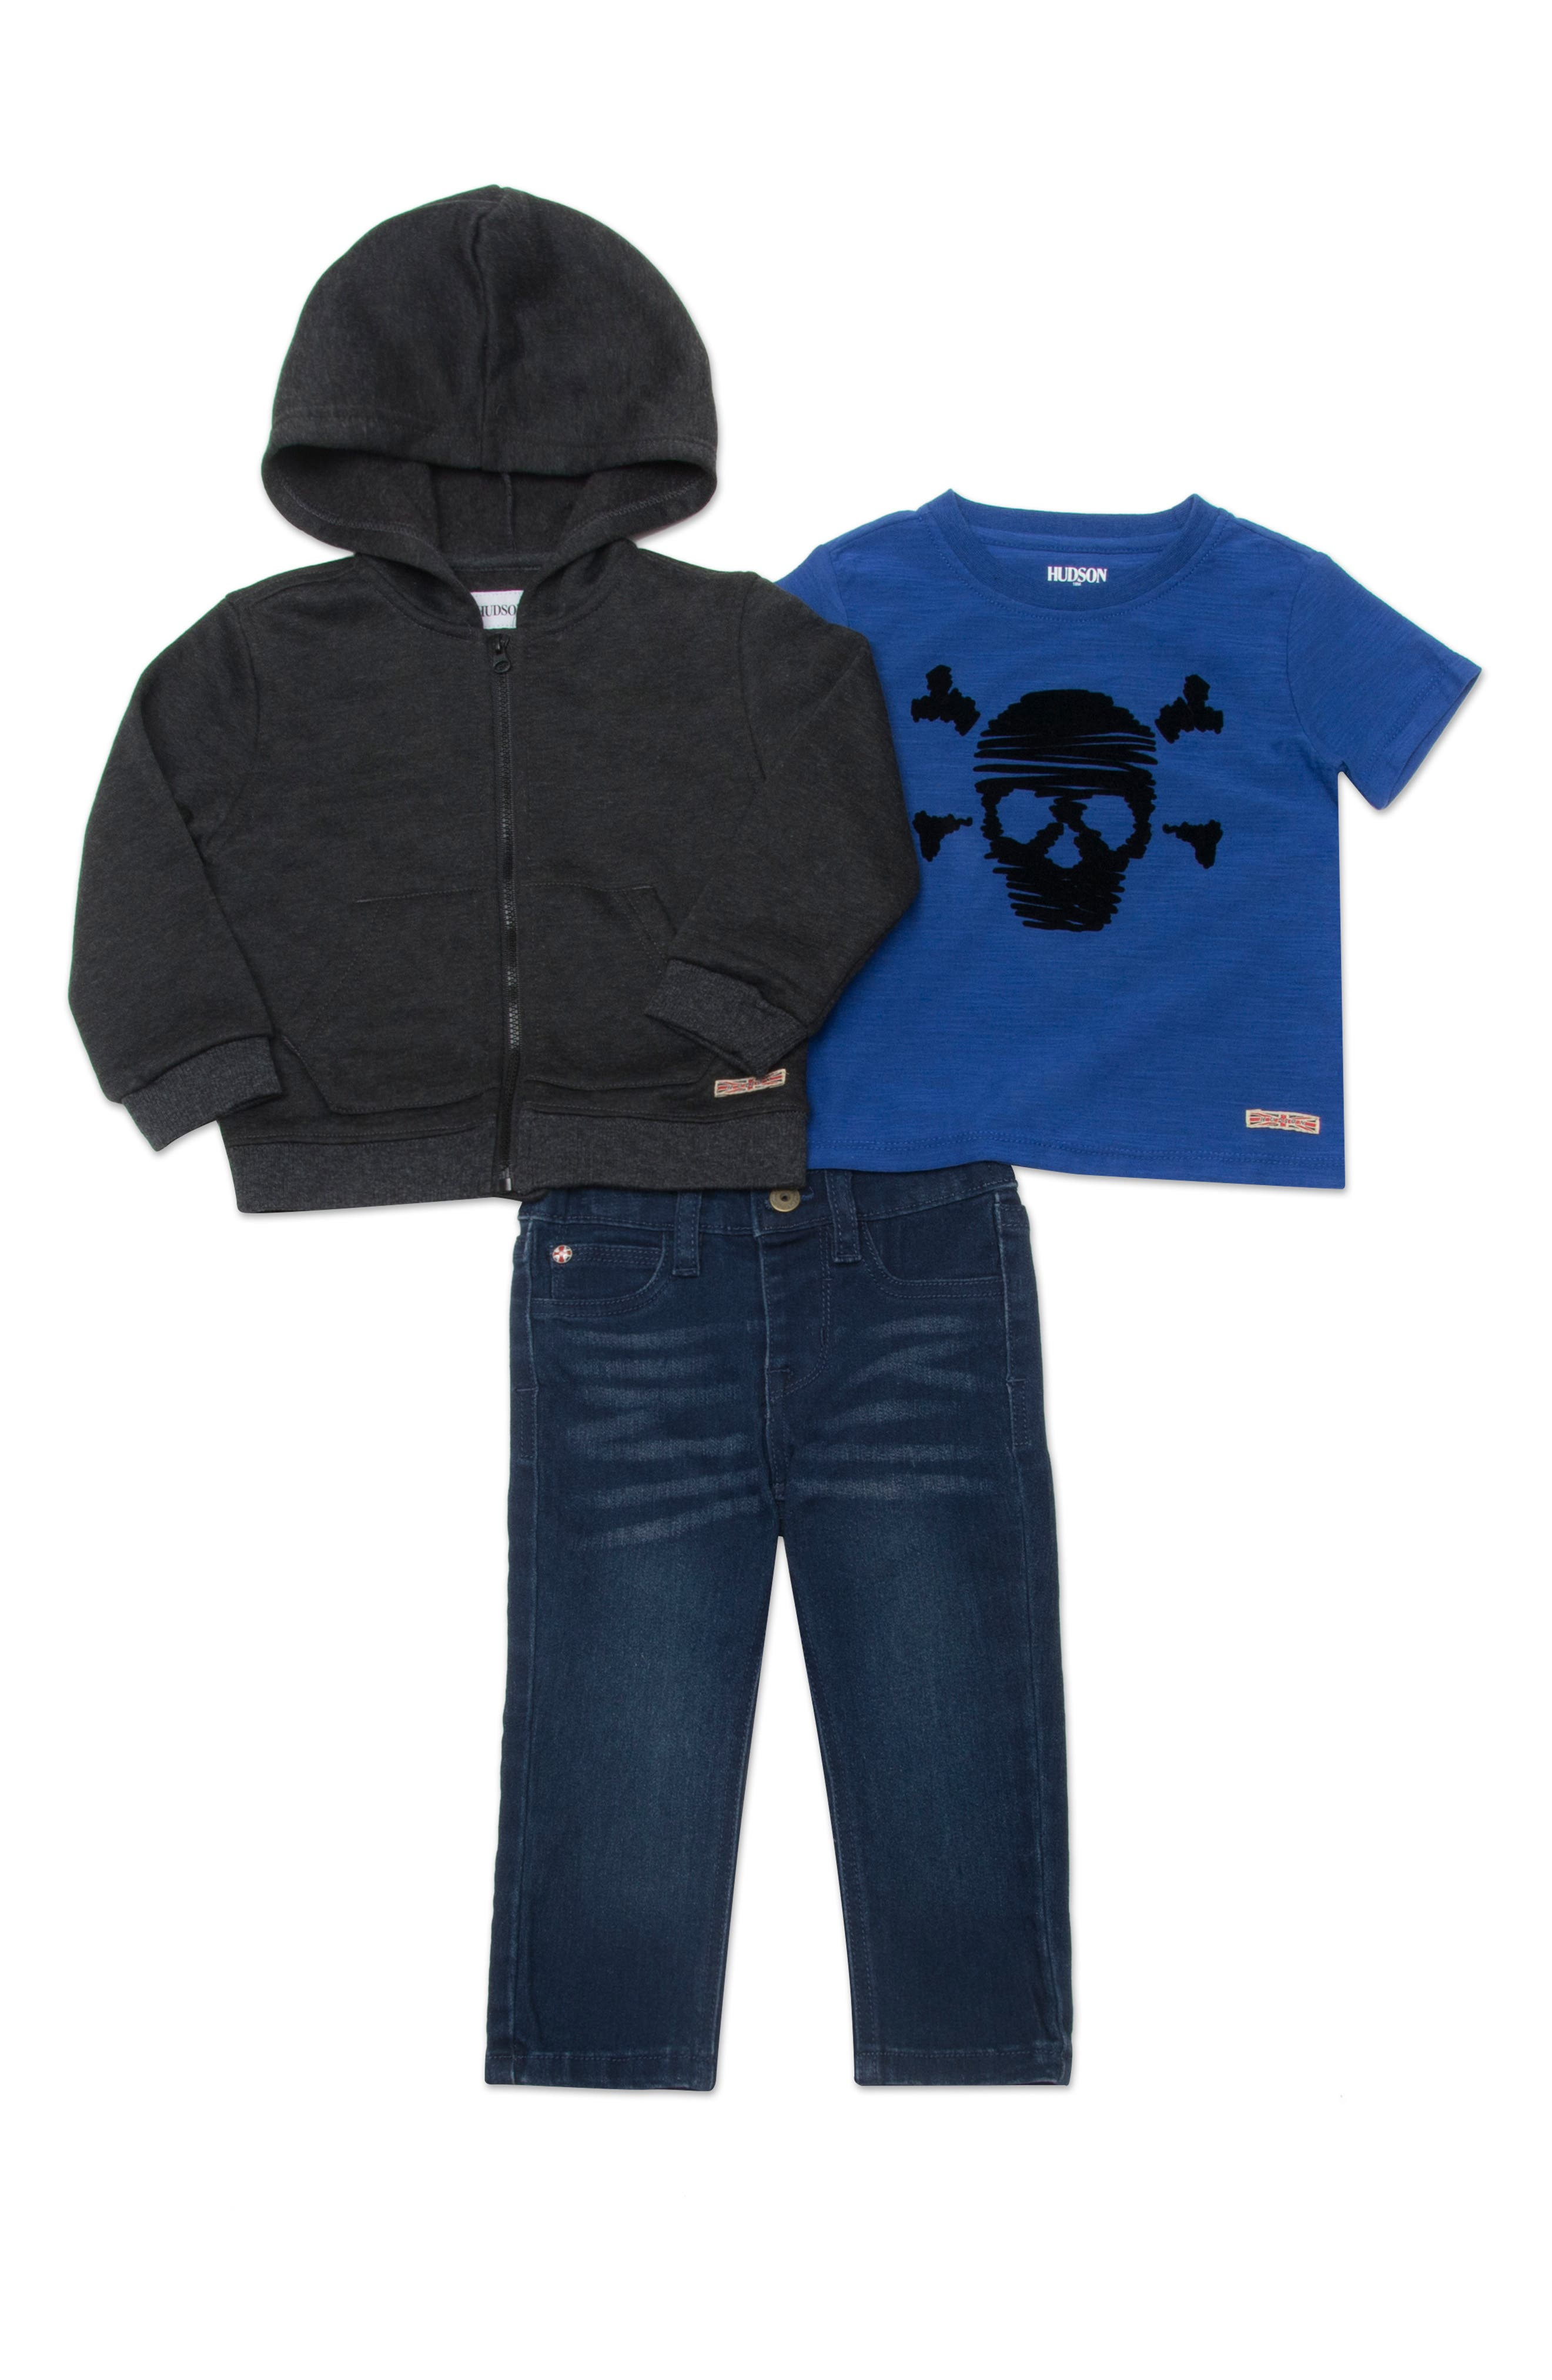 Hudson Kids Zip Front Hoodie, Graphic T-Shirt & Jeans Set (Baby Boys)